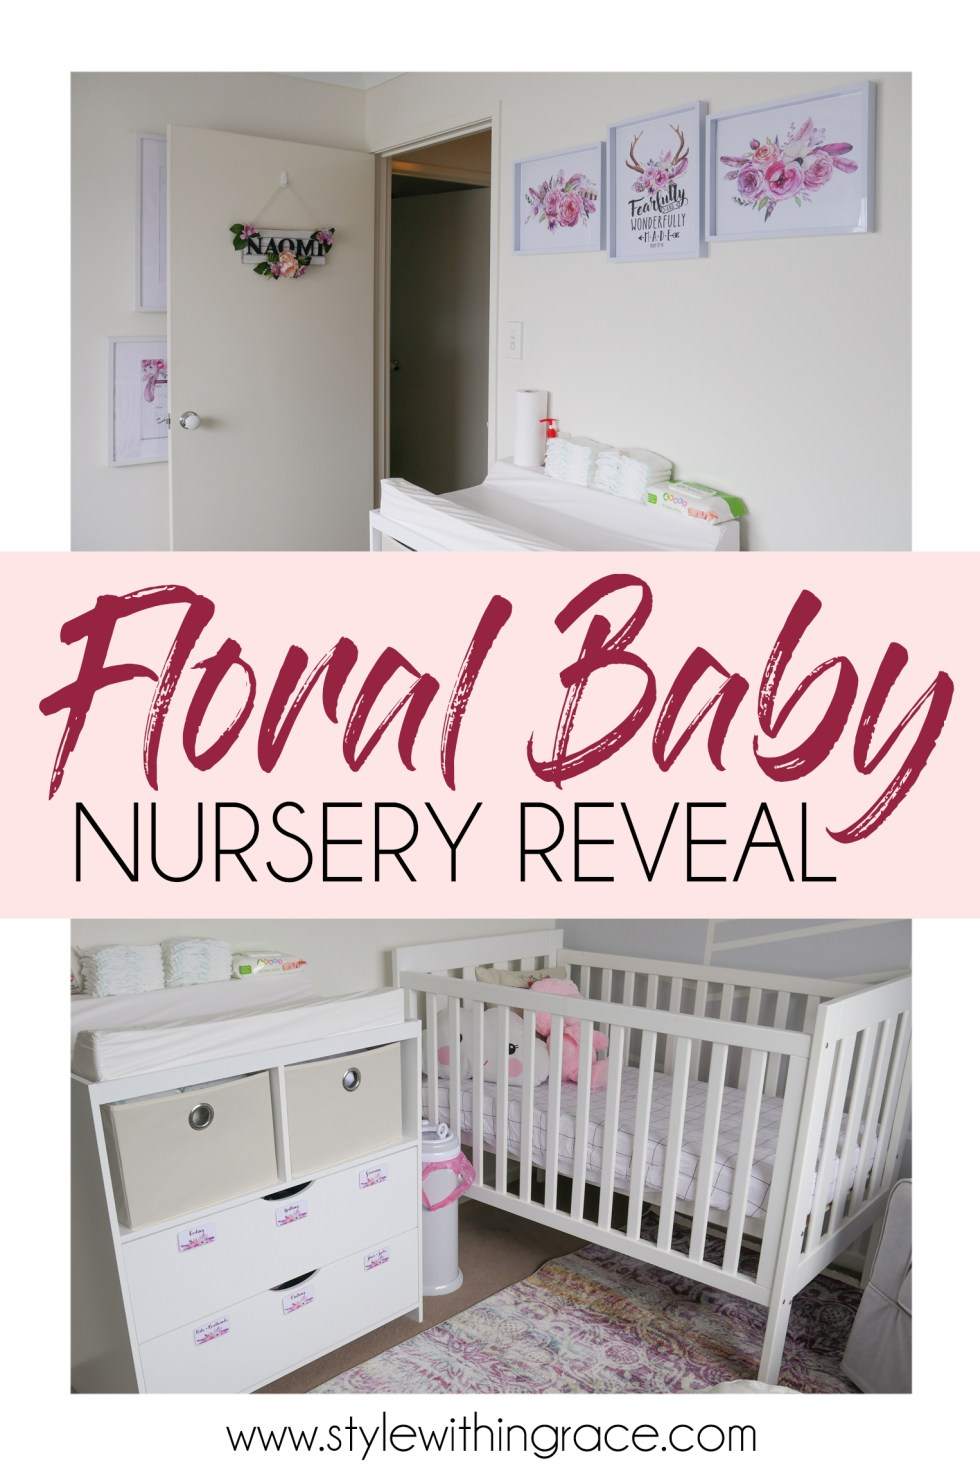 There's lots of ideas and inspiration for you in my boho floral baby girl nursery reveal. The perfect mix of pink, grey and white for a feminine but not too girly nursery design. Plenty of DIYs for the crafty mumma and a break down of my nursery organisation. #nurseryreveal